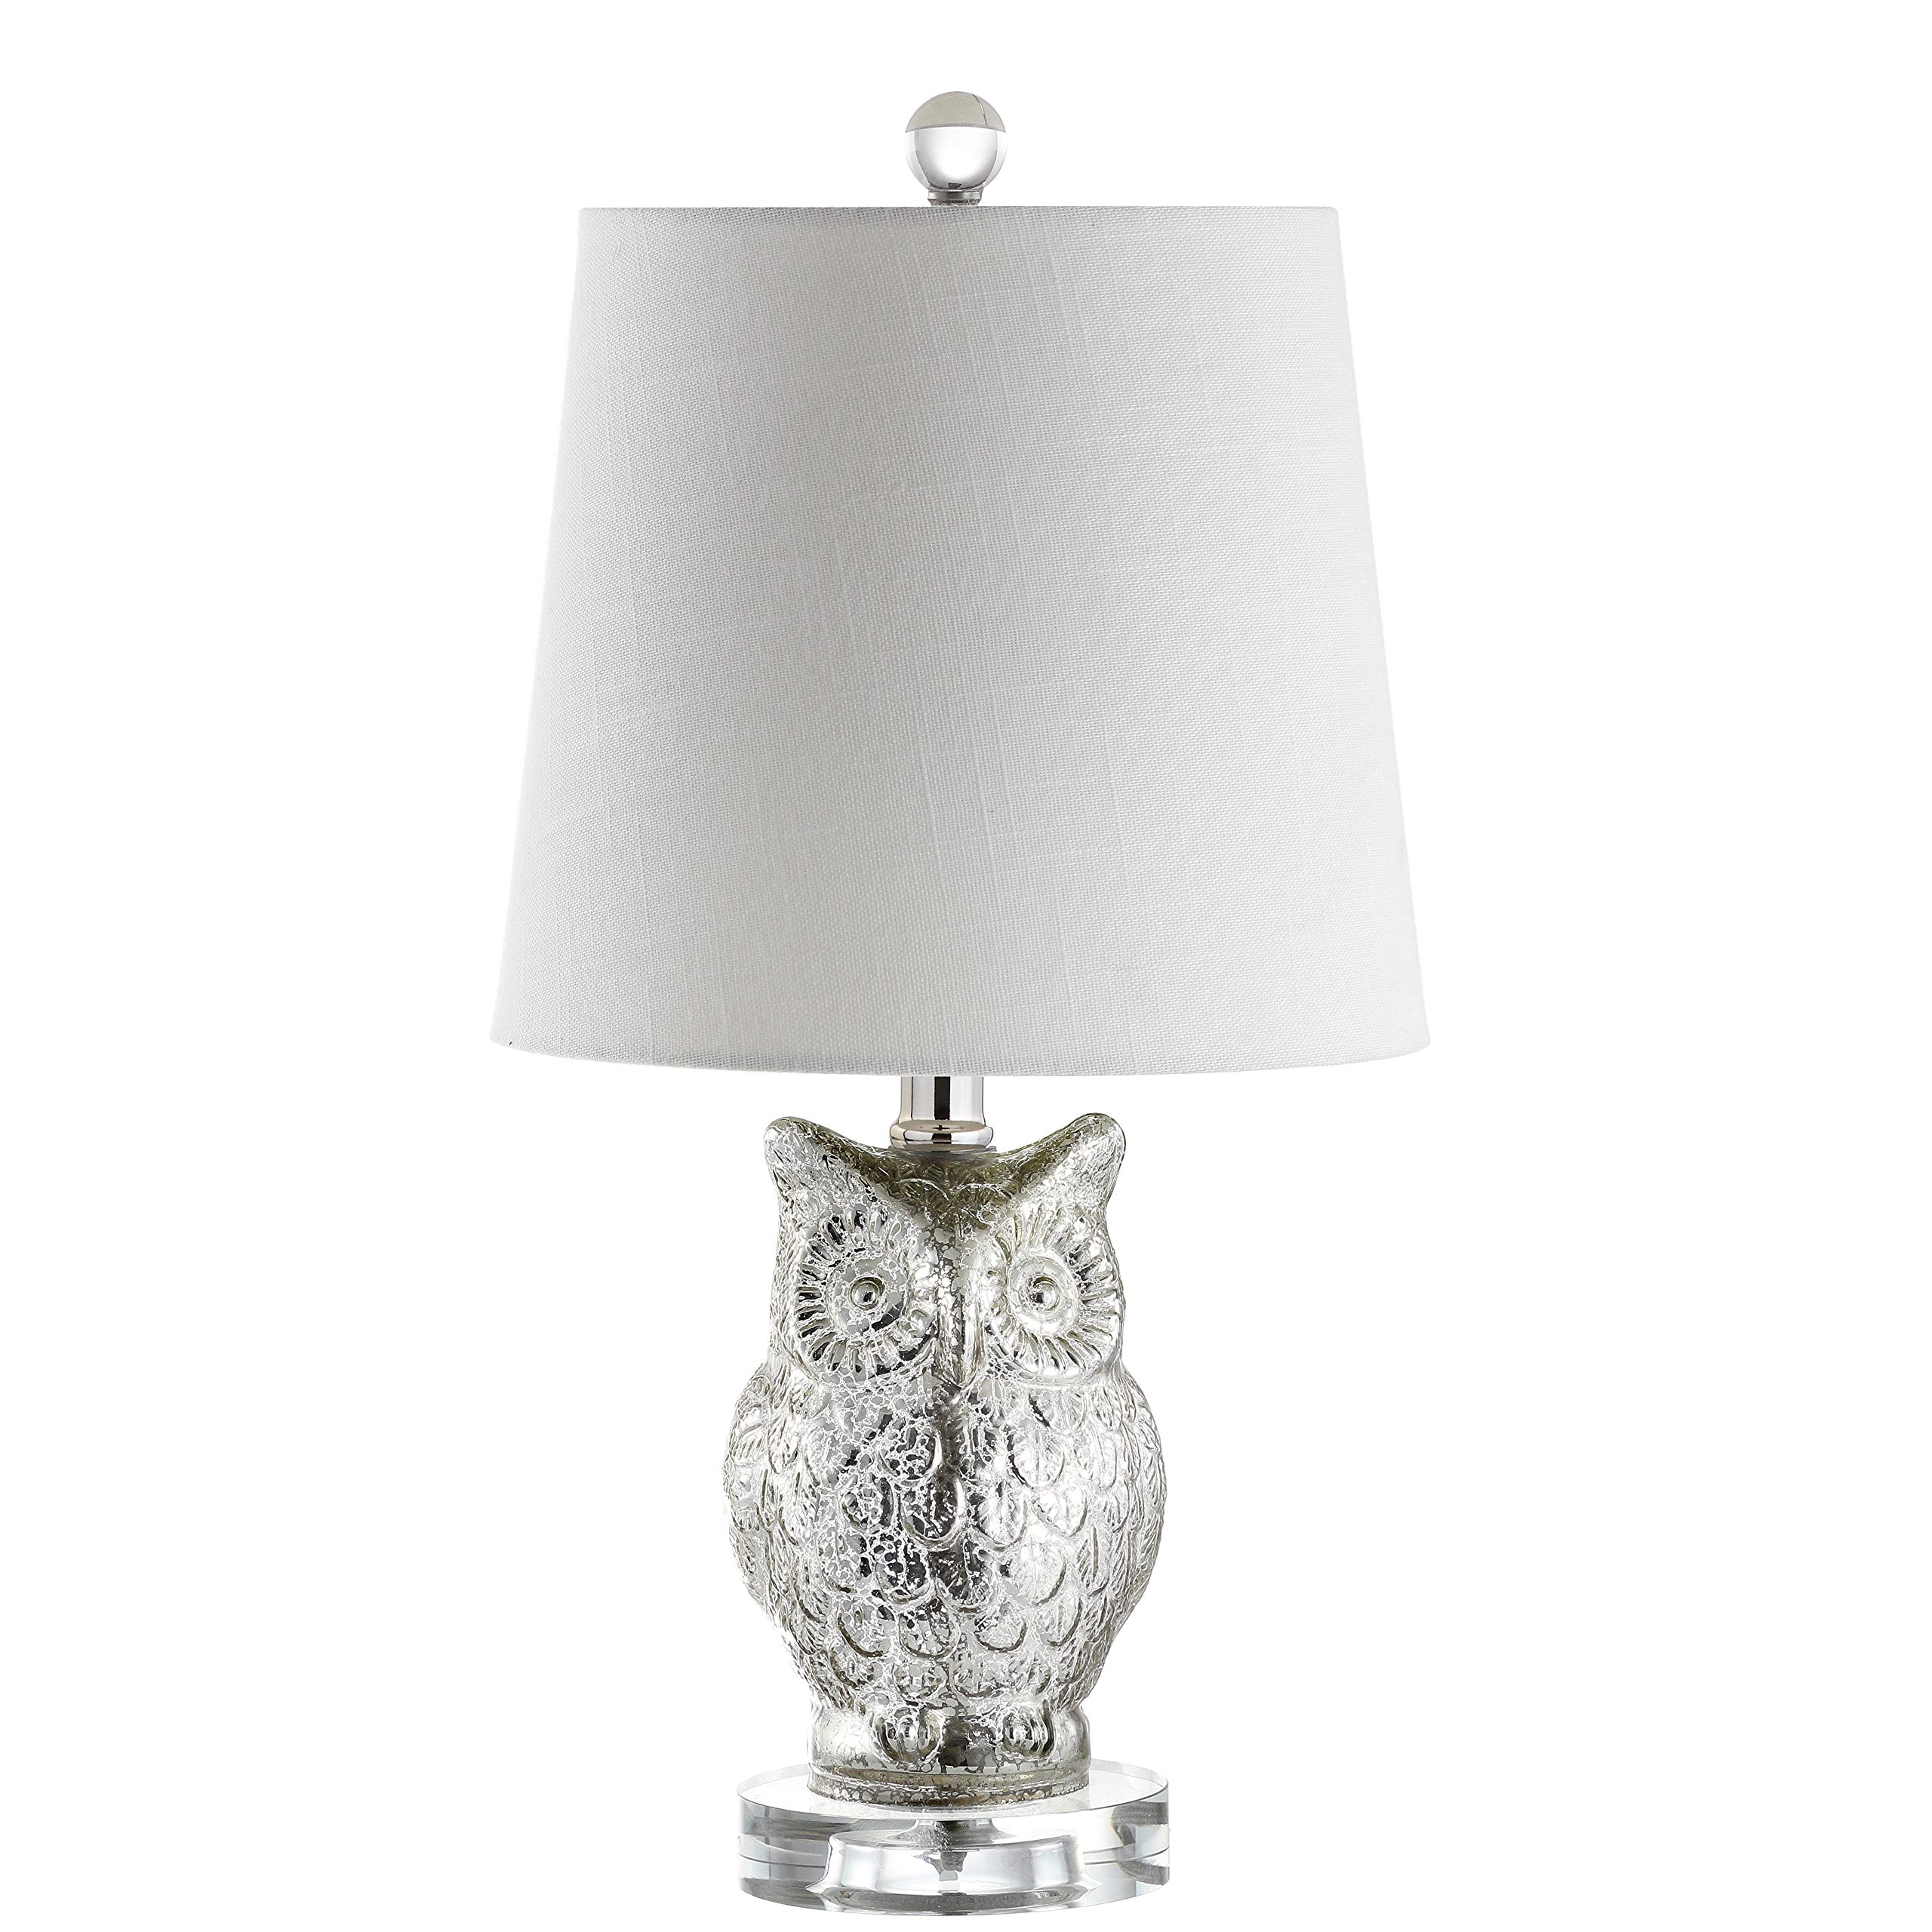 JONATHAN Y JYL4010A Night Owl 19'' Glass/Crystal Table Lamp, Silver/Ivory